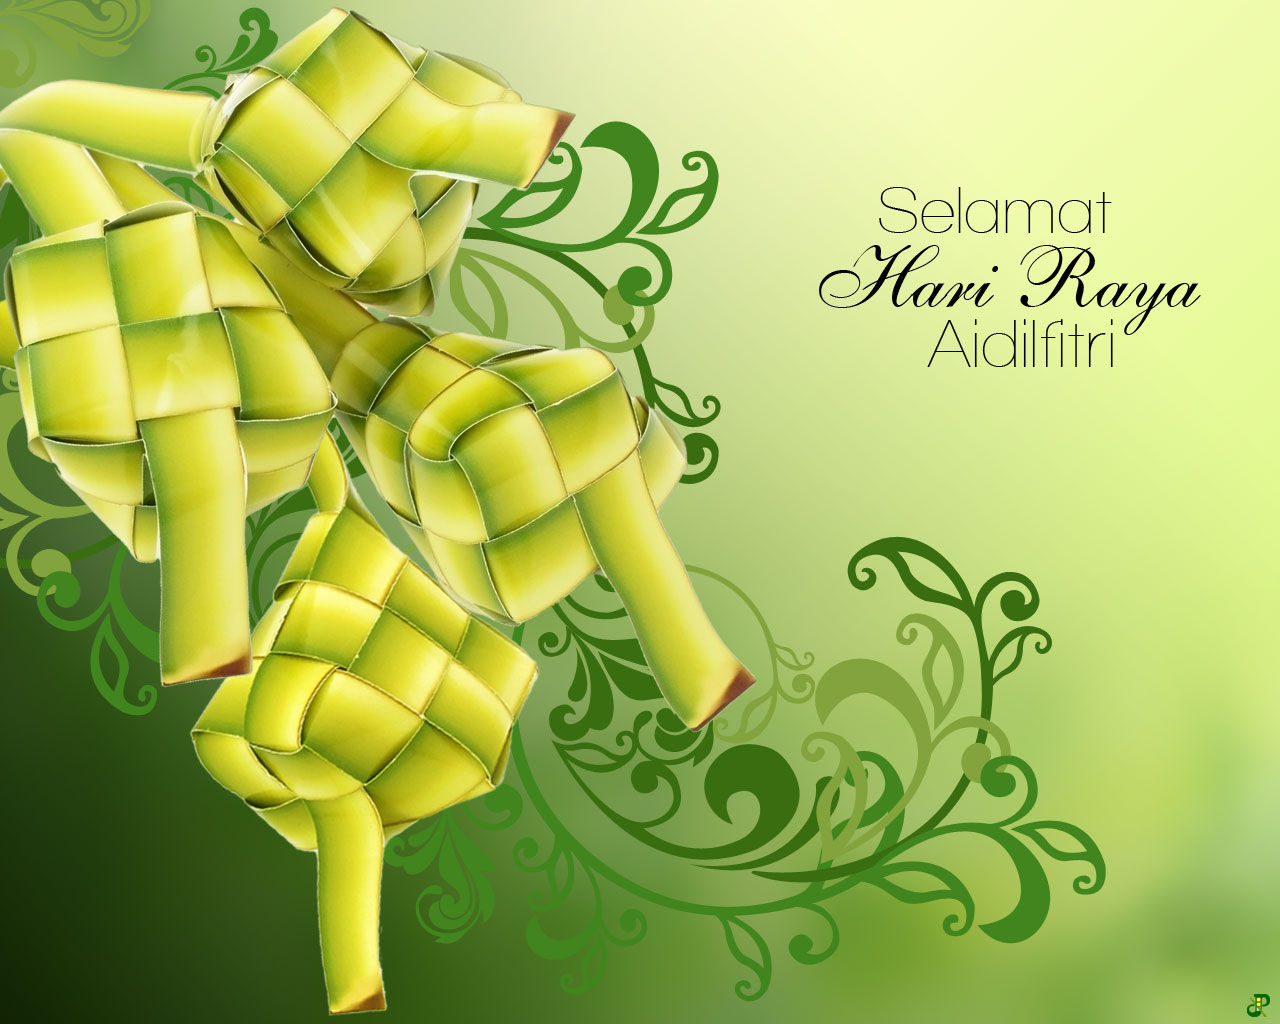 http://3.bp.blogspot.com/-QedrjS64YQI/TlyaVp7qZqI/AAAAAAAADgA/0xEnE5zq1Ws/s1600/Hari_Raya_Wallpaper_Free_Download_for_pc_desktop_background_2011.jpg